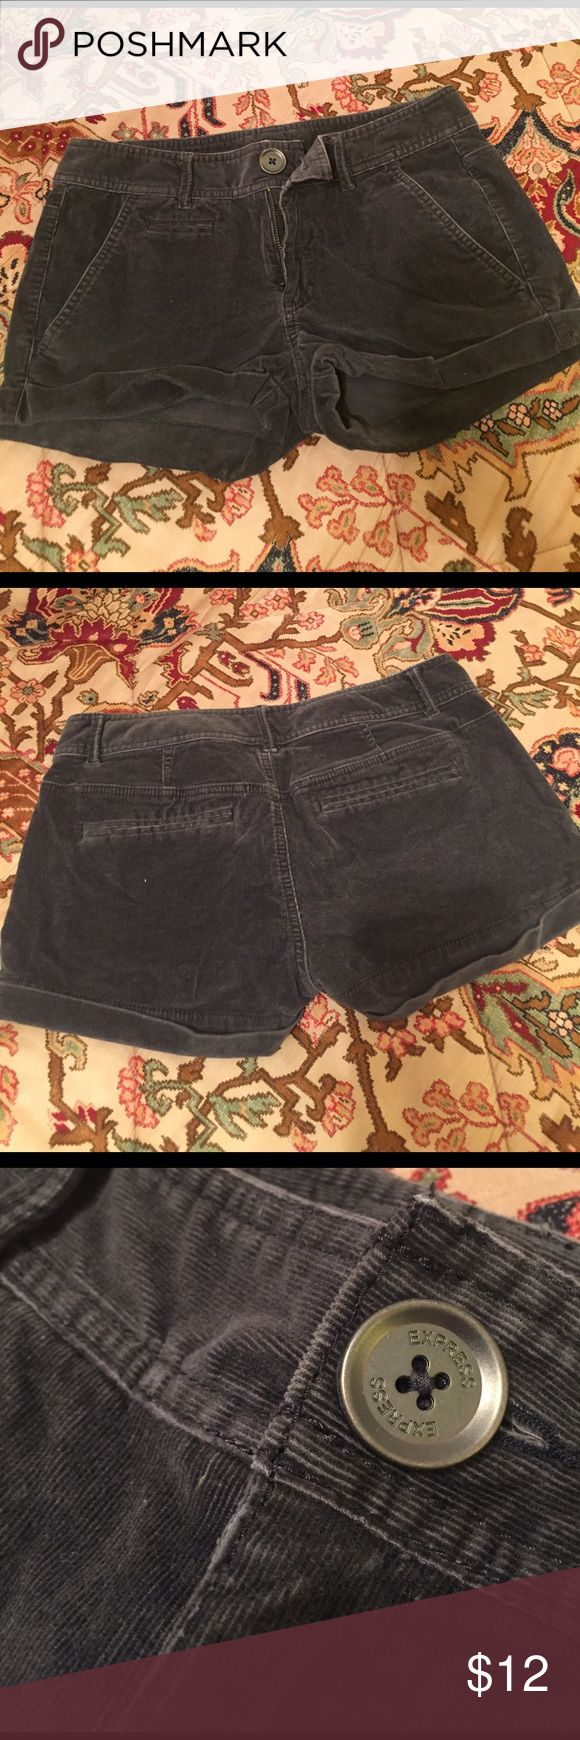 Coloroid Express gray shorts Express coloroid gray shorts Express Shorts